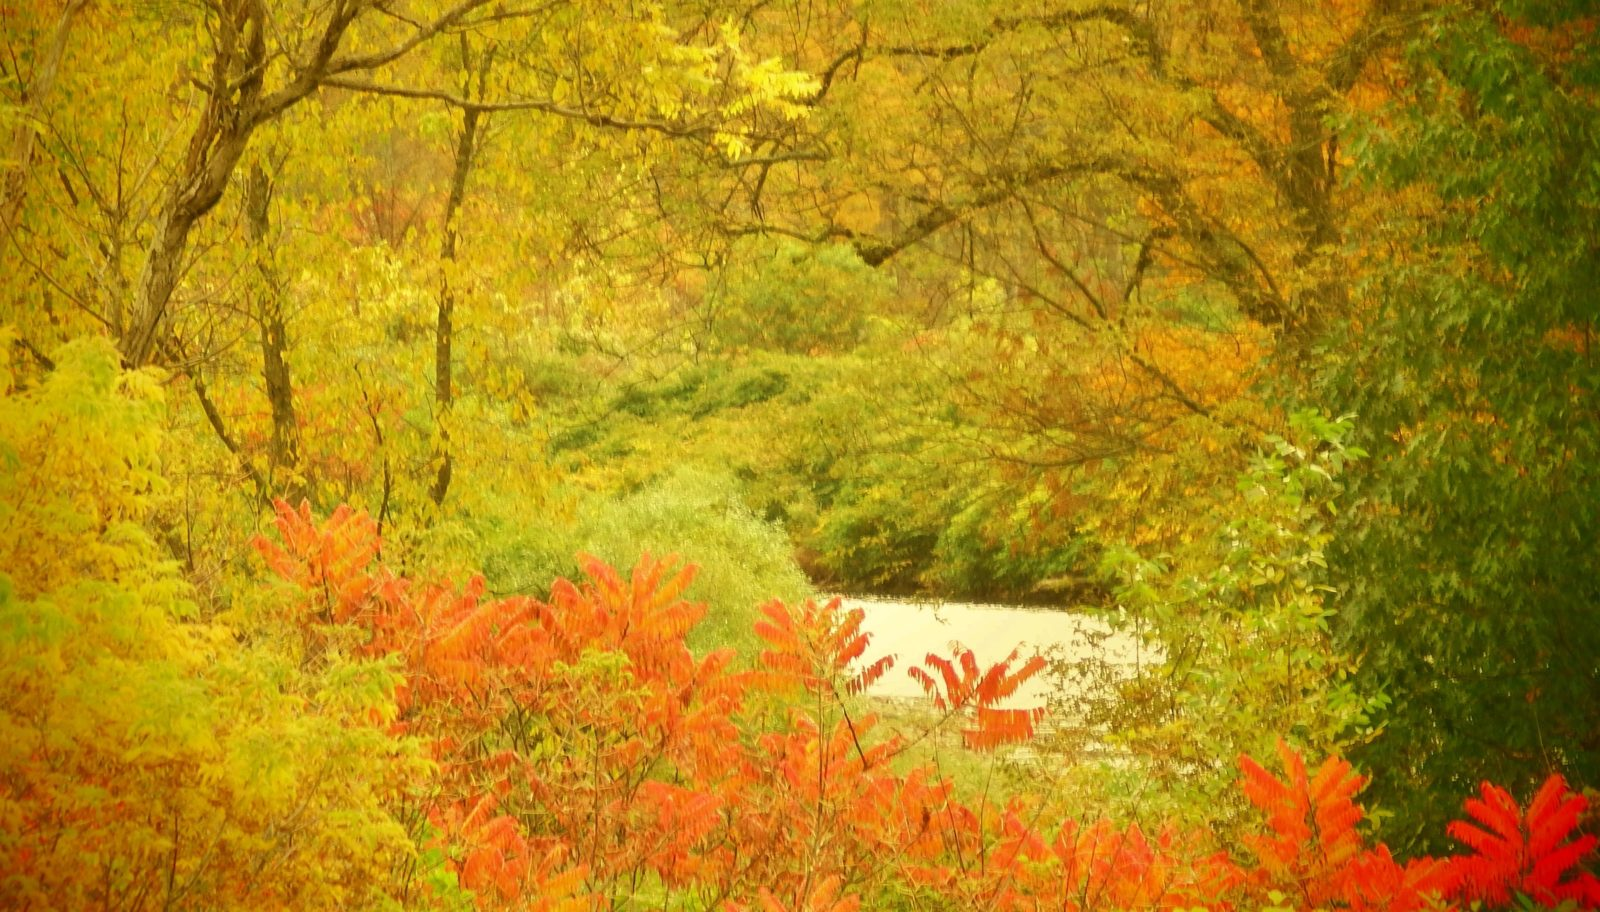 White River in the fall